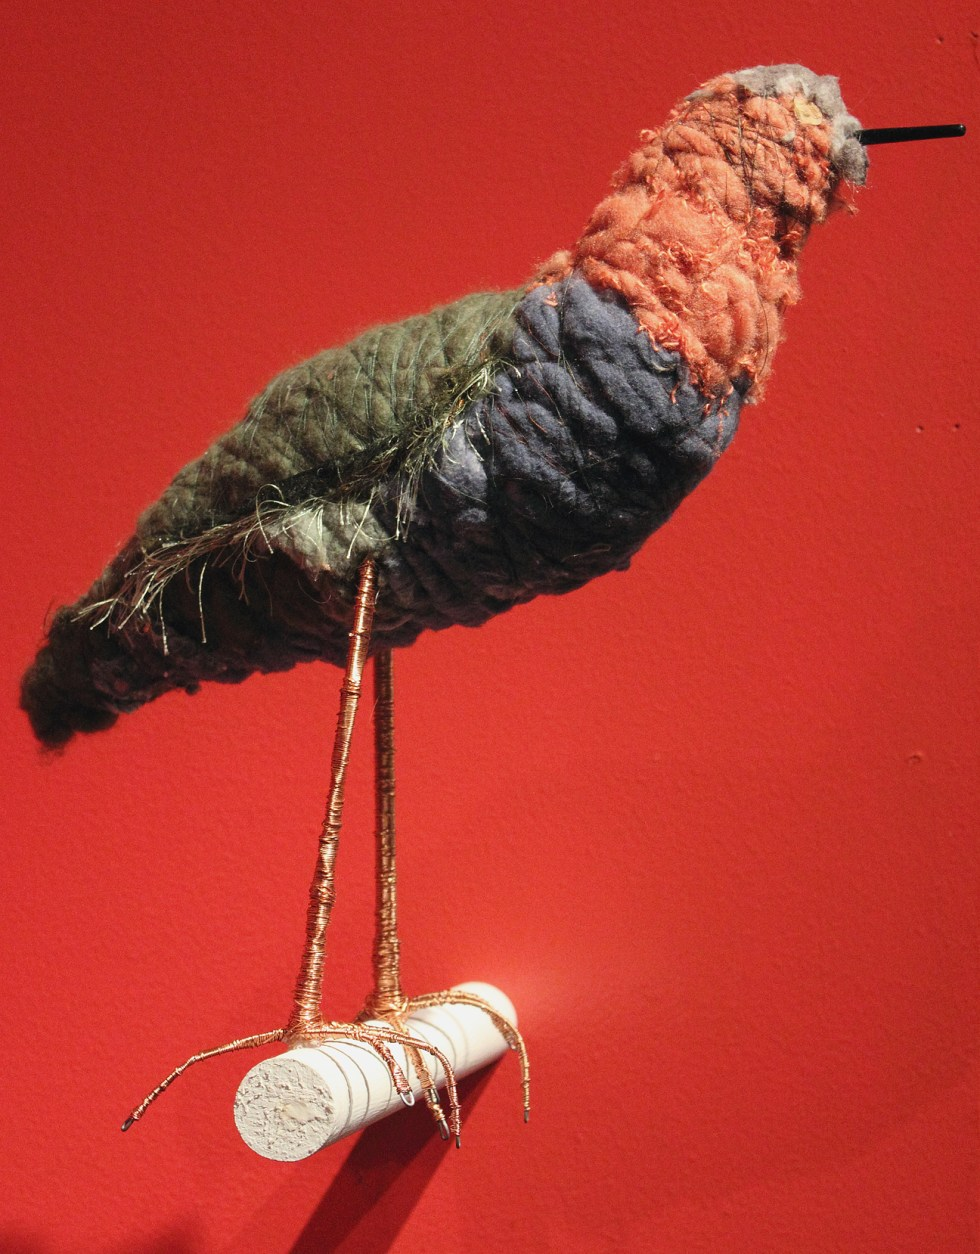 (above) 'Green Heron,' 2010, mixed media and recycled materials